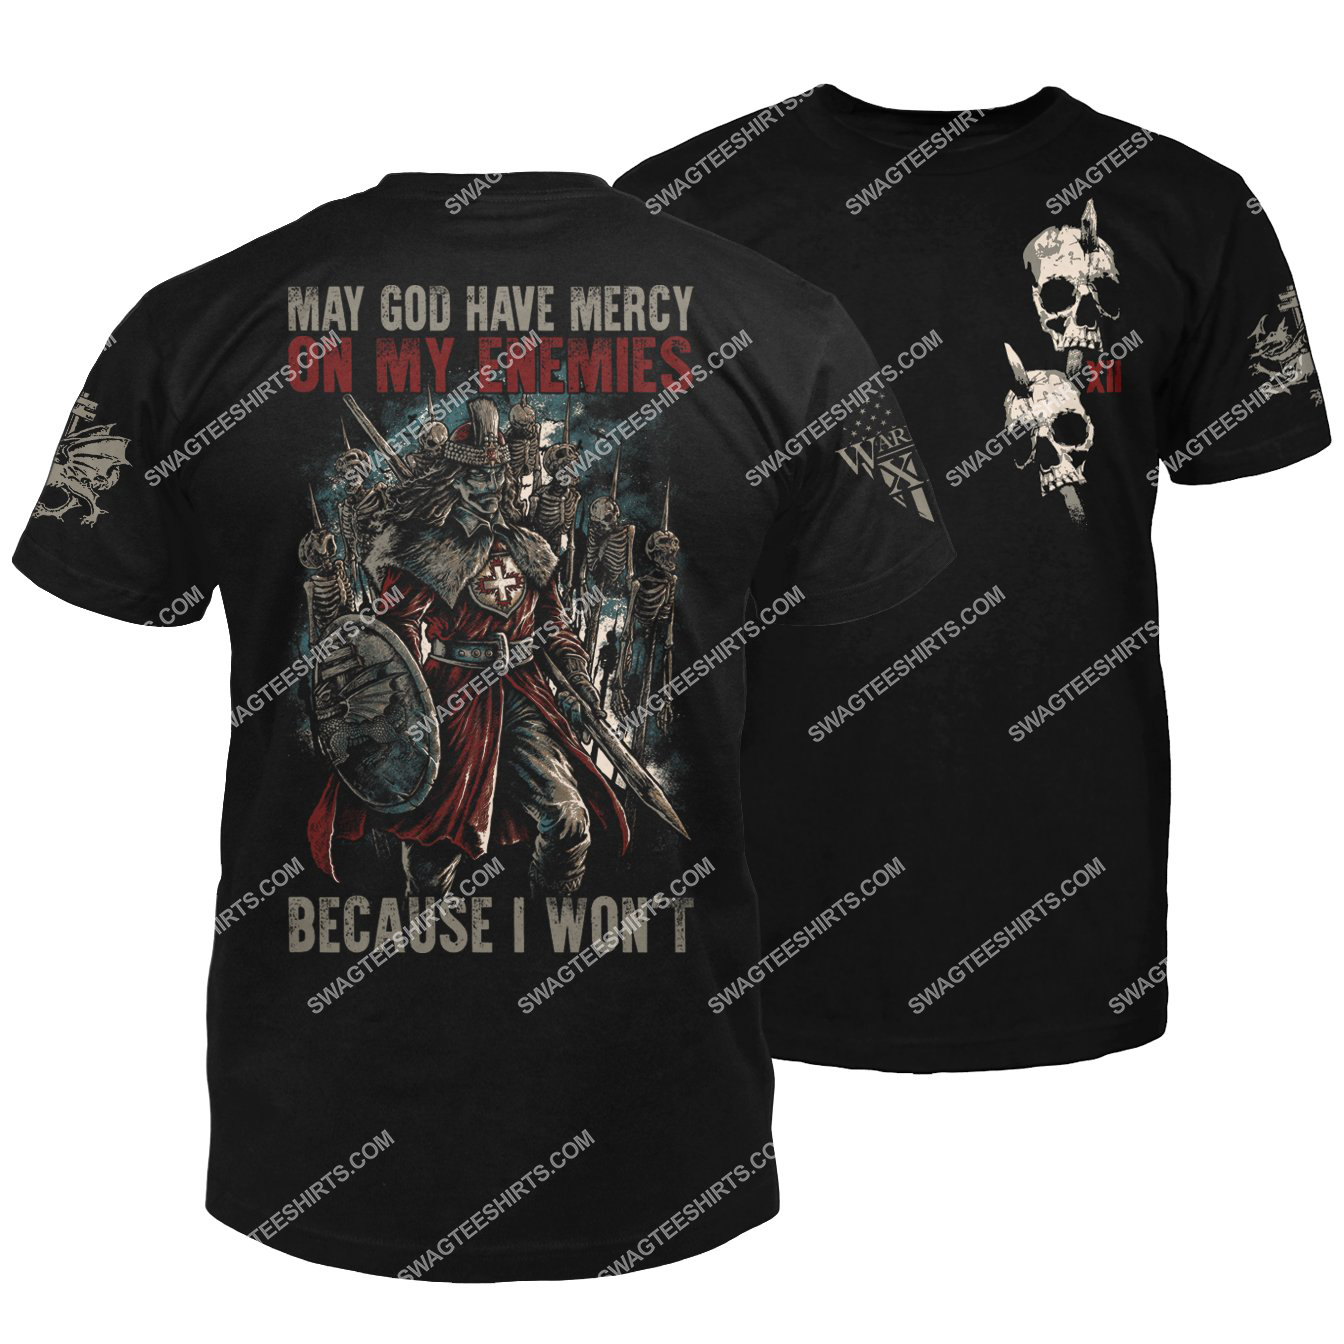 may God have mercy on my enemies because i won't vlad the impaler halloween shirt 1 - Copy (3)